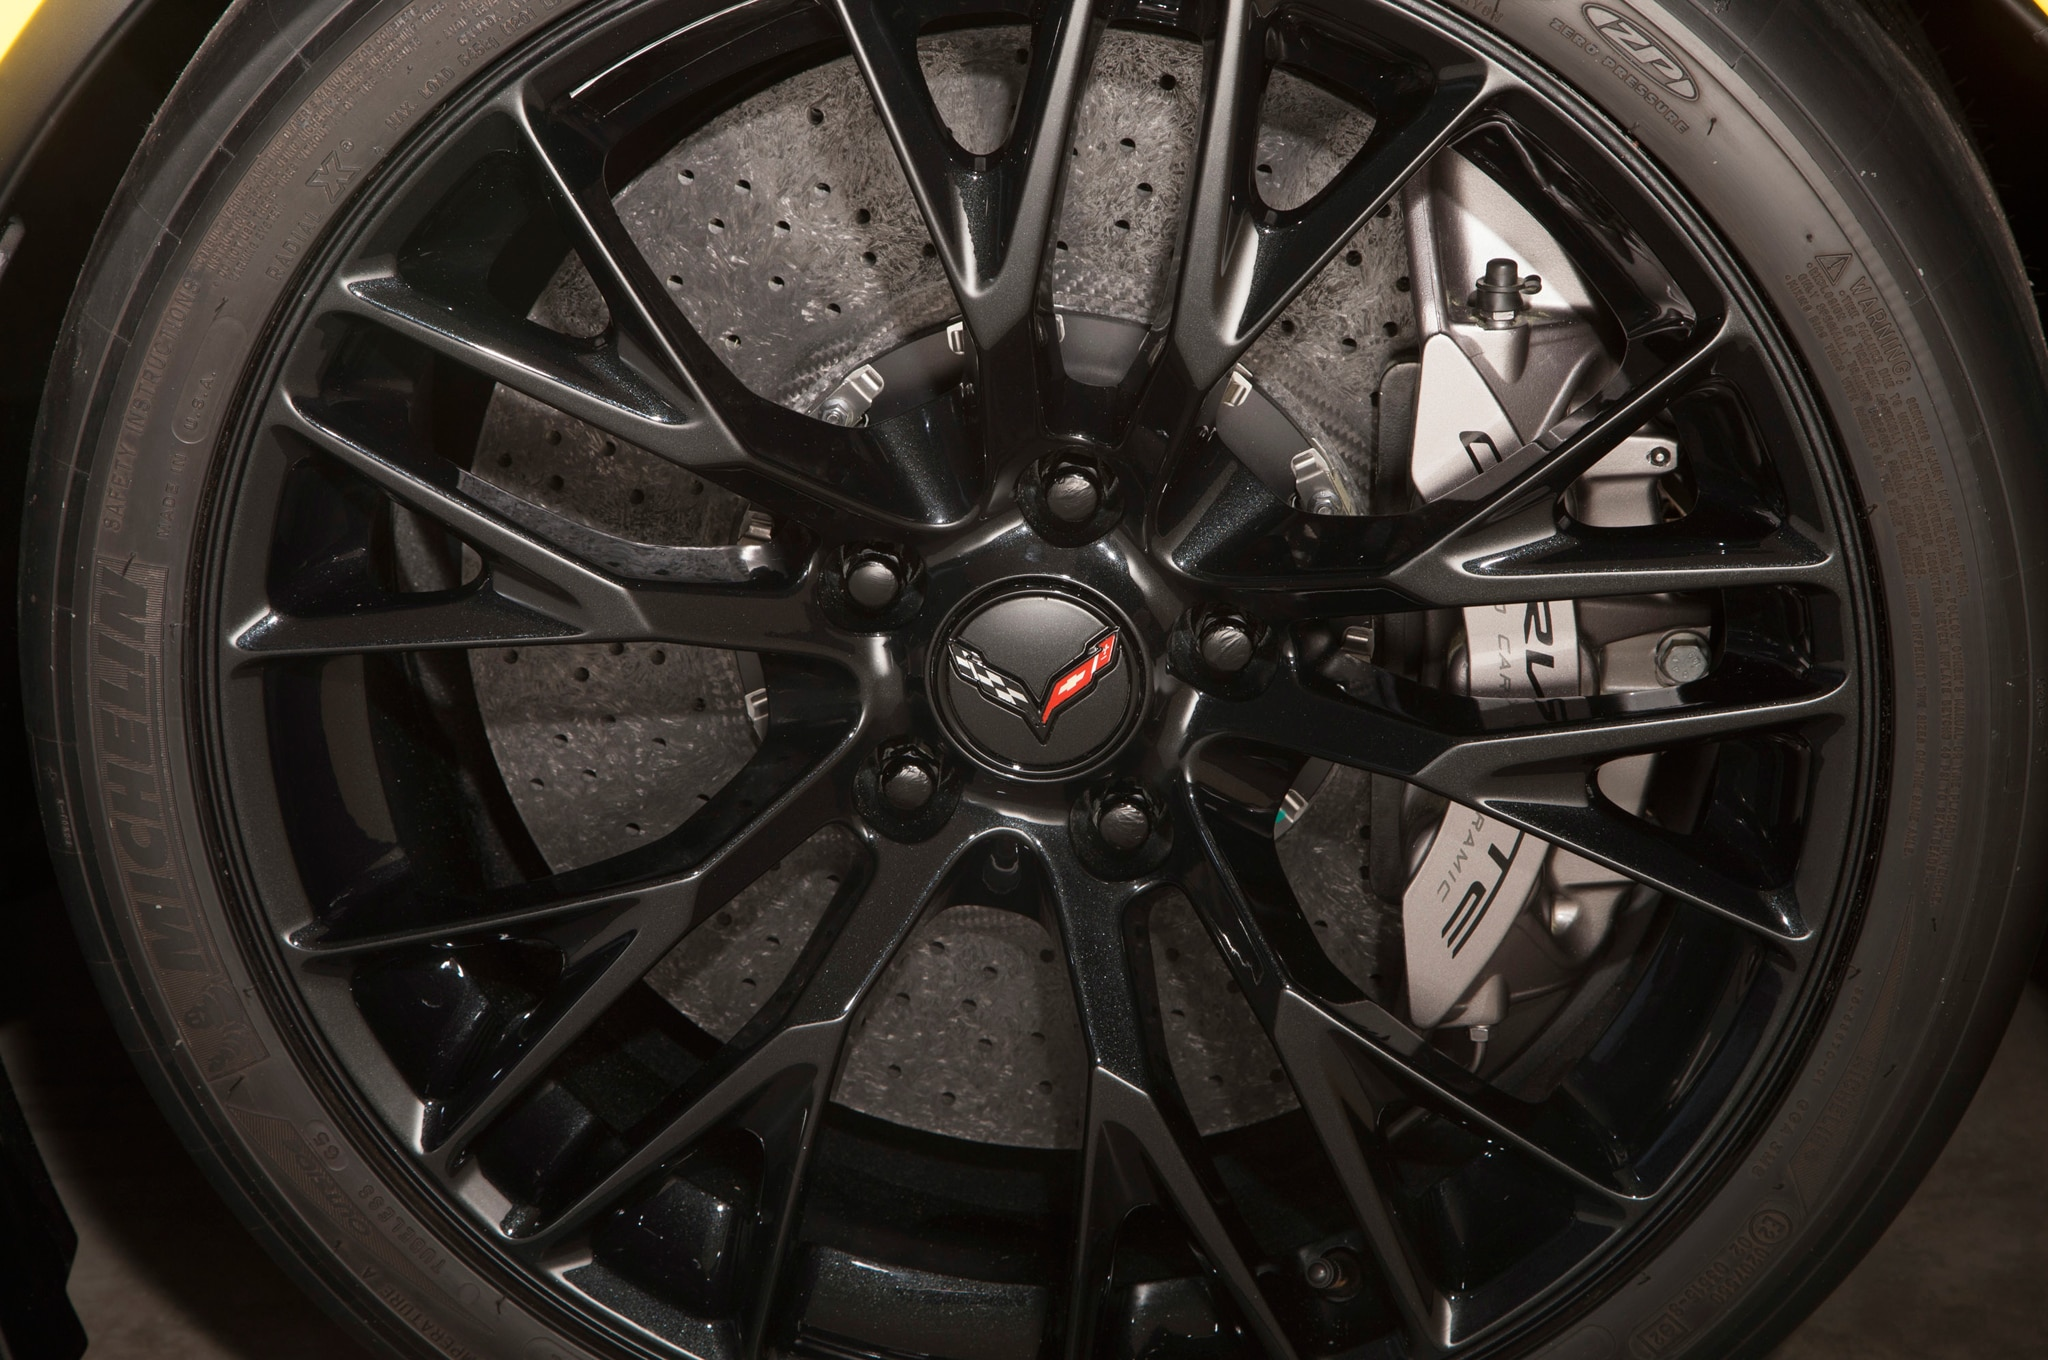 2015 Chevrolet Corvette Z06 Wheels